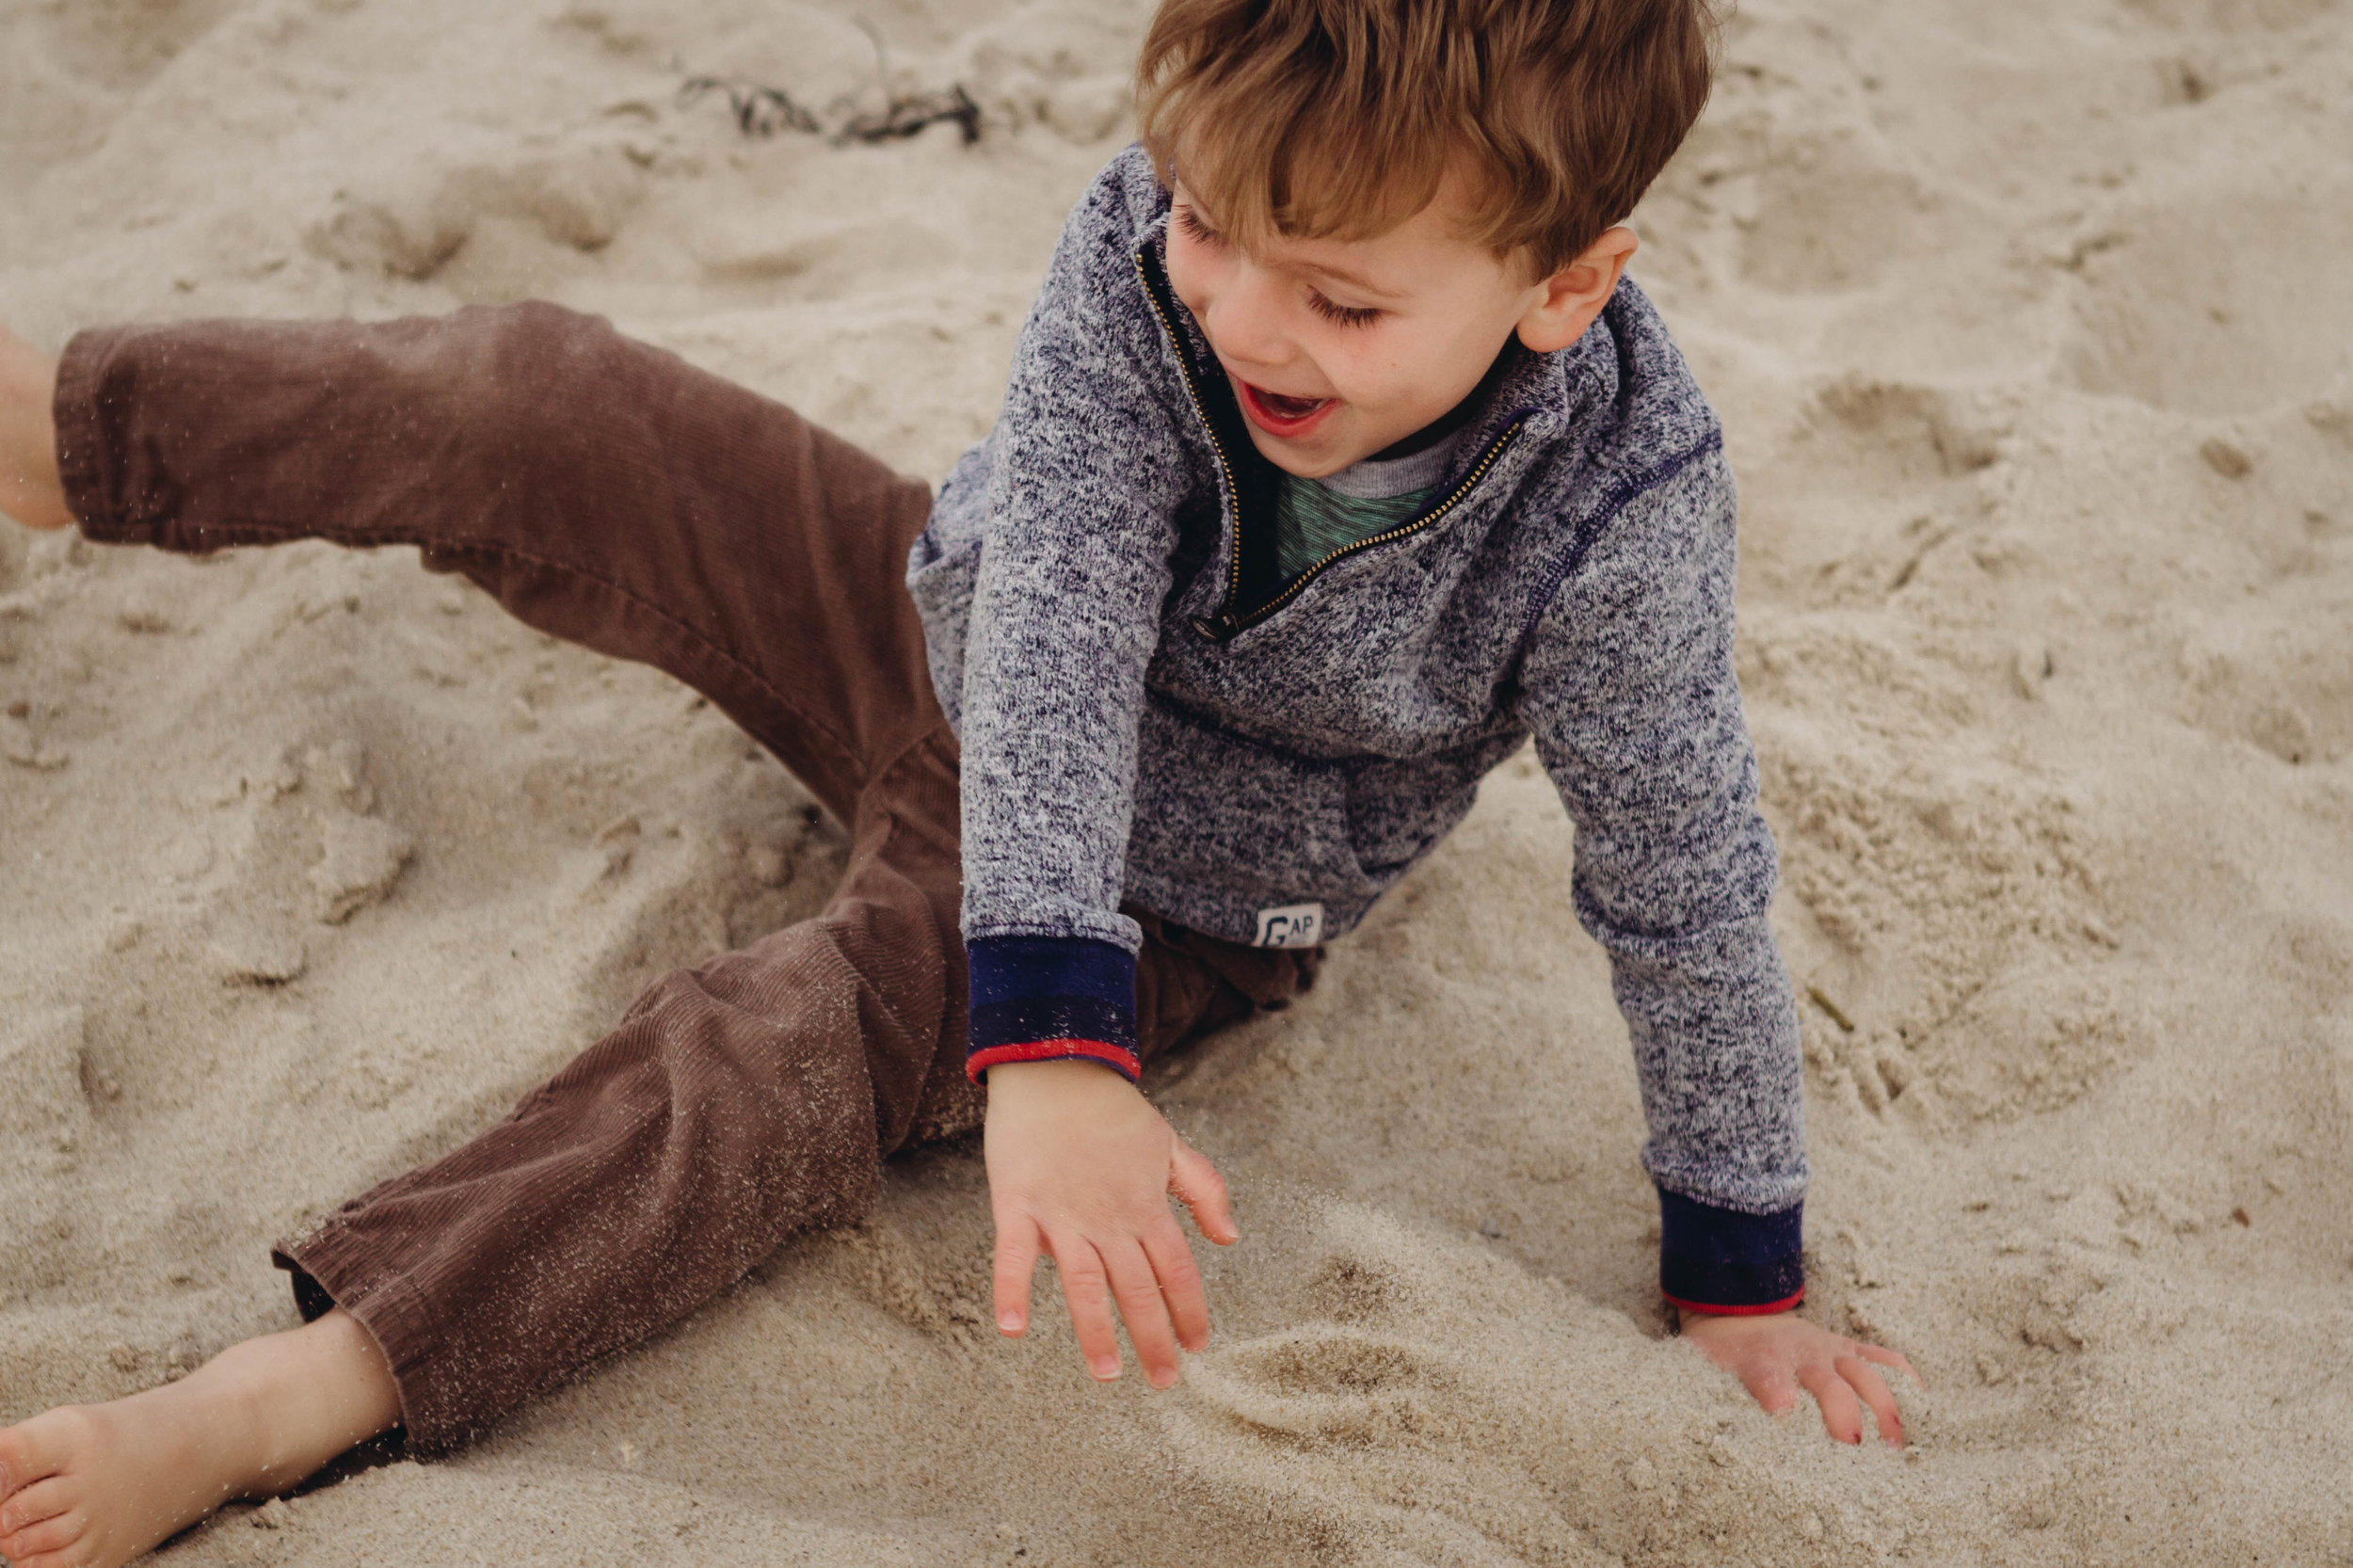 nauset beach laughter - laura barr photography